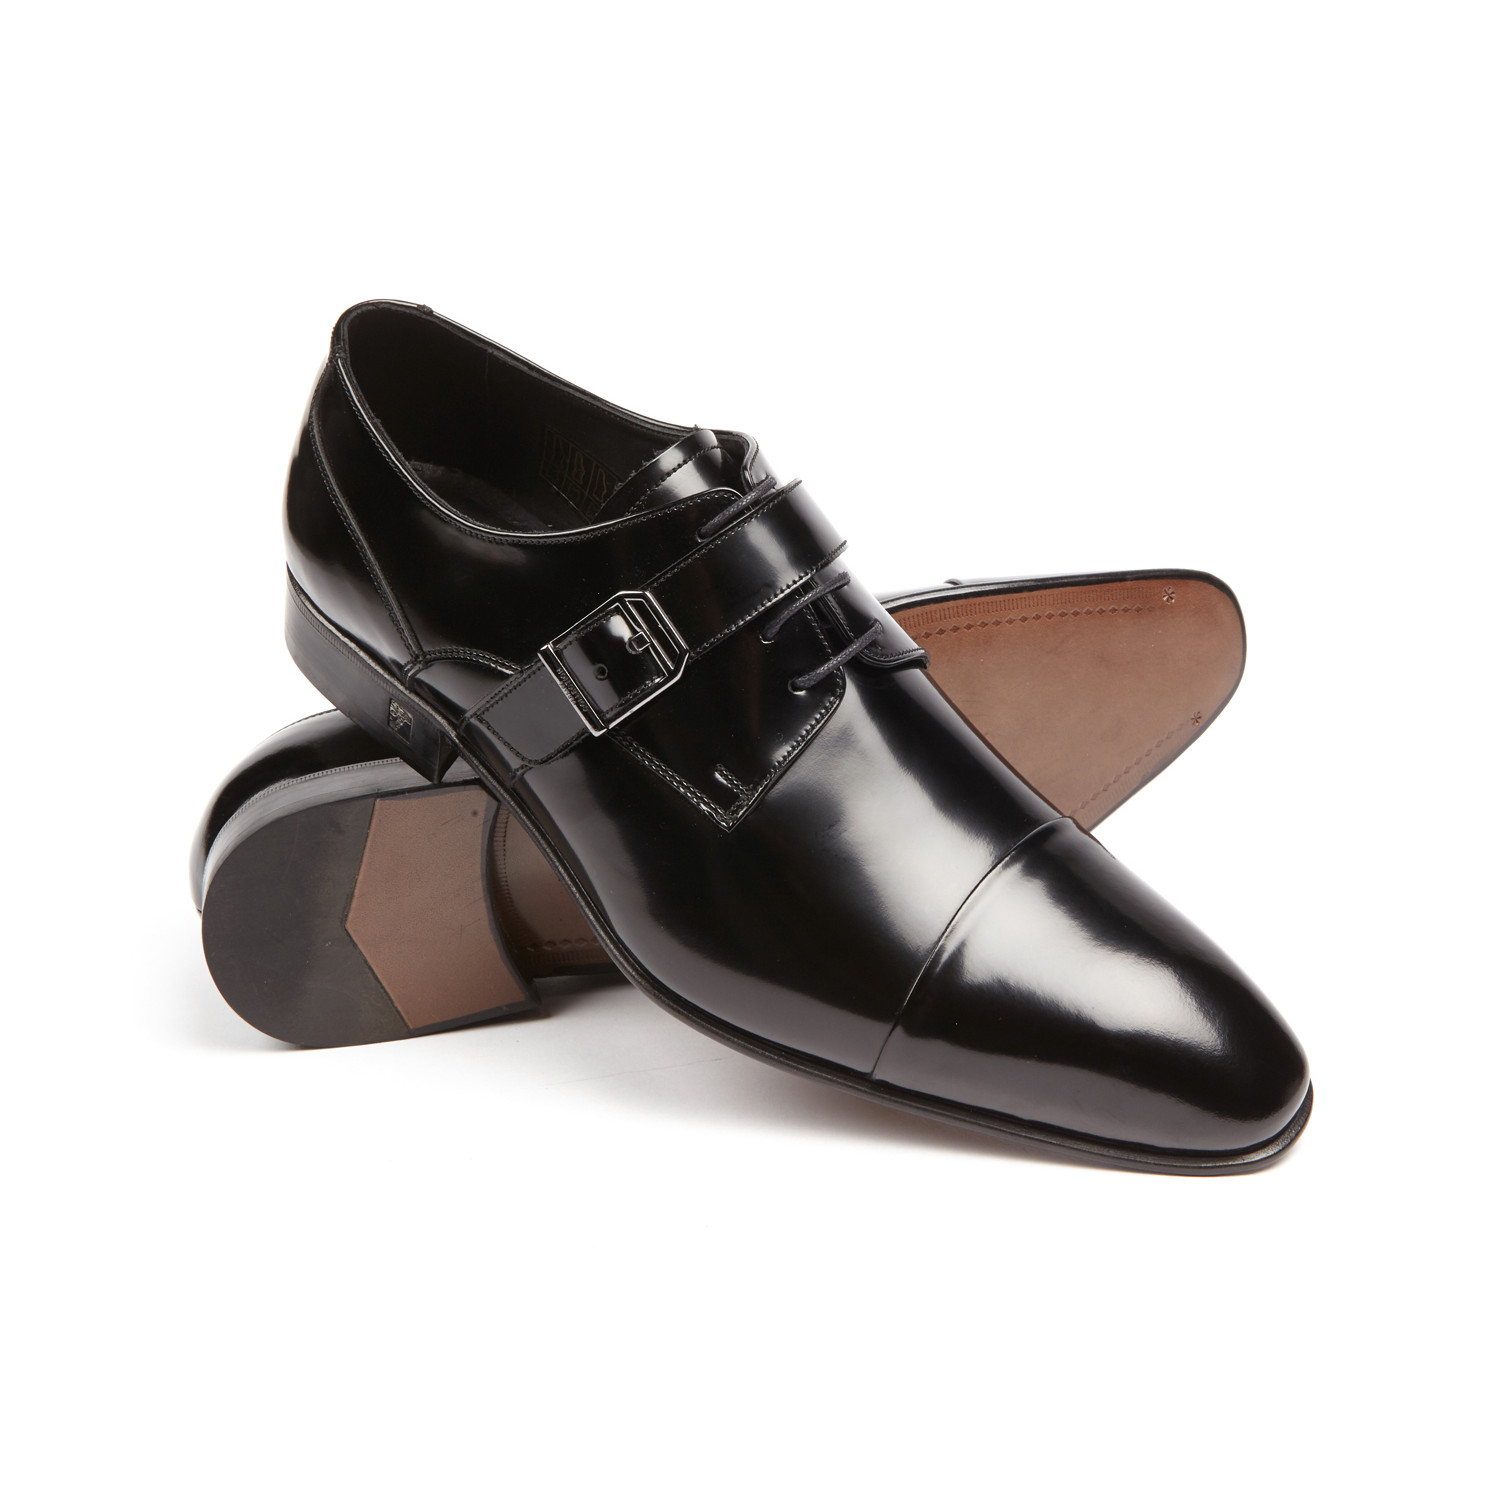 getdangero.ga provides single shoes items from China top selected Dress Shoes, Shoes & Accessories suppliers at wholesale prices with worldwide delivery. You can find shoe, Slip-On single shoes free shipping, single toe shoes and view single shoes reviews to help you choose.